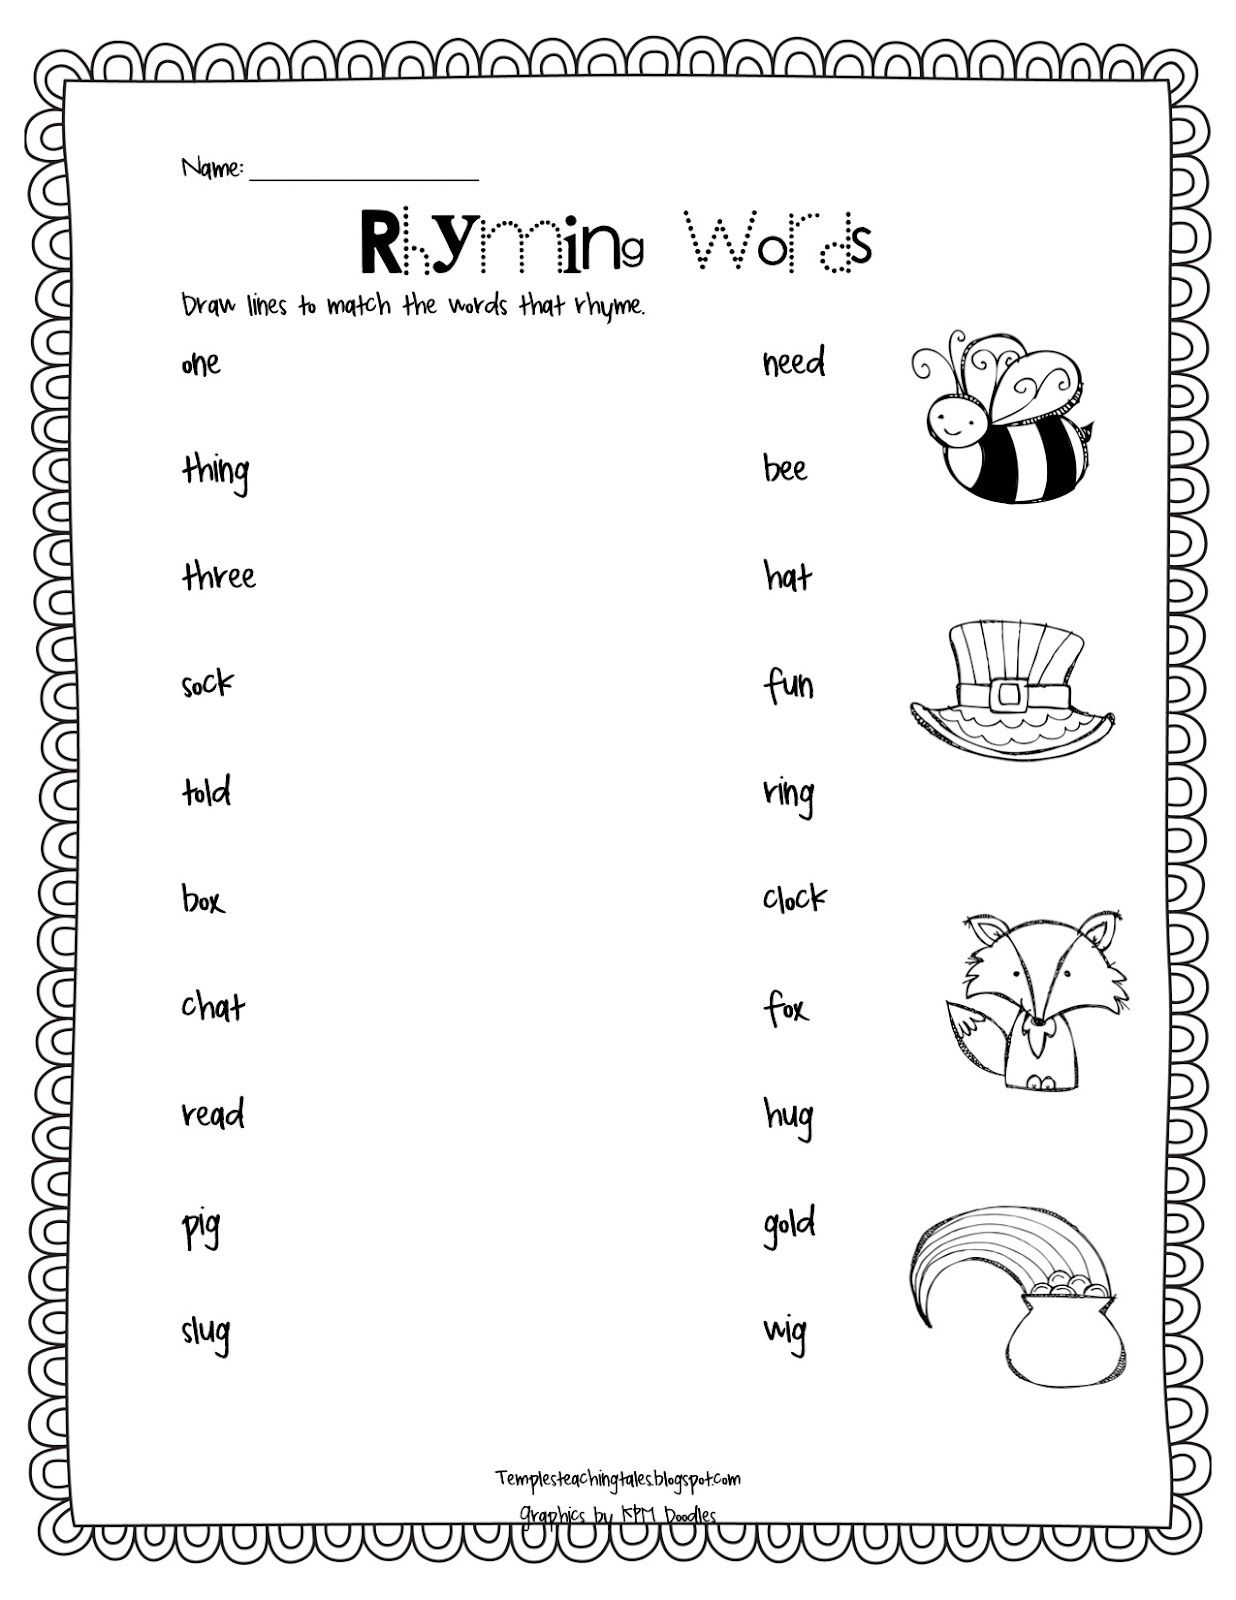 Rhyming Words Worksheets - Khayav